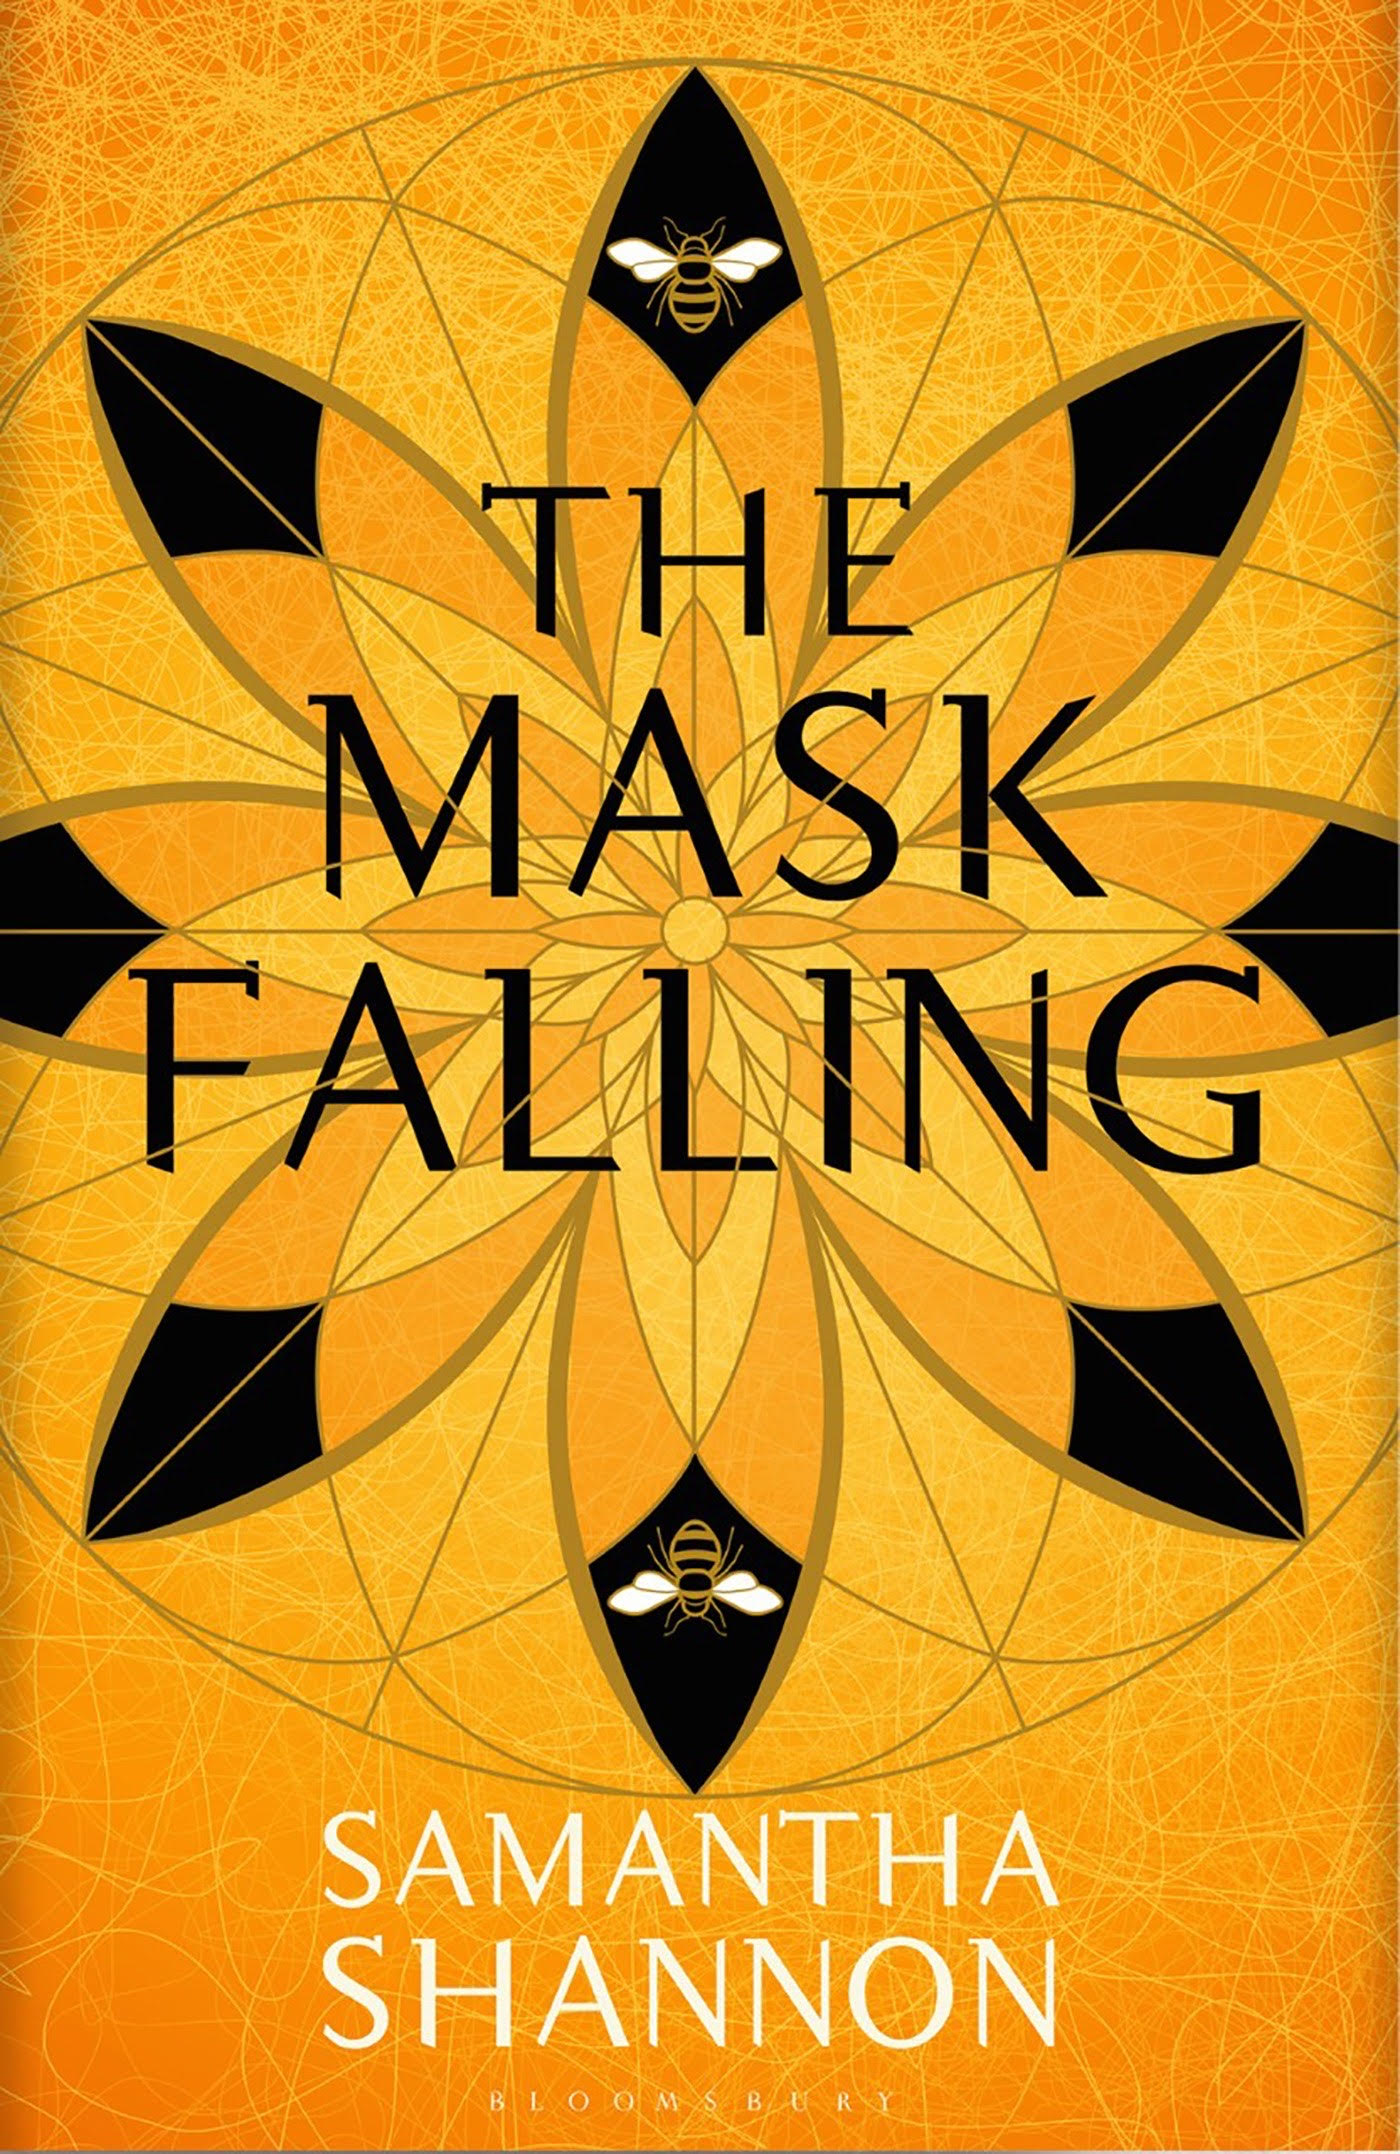 Review of The Mask Falling by Samantha Shannon